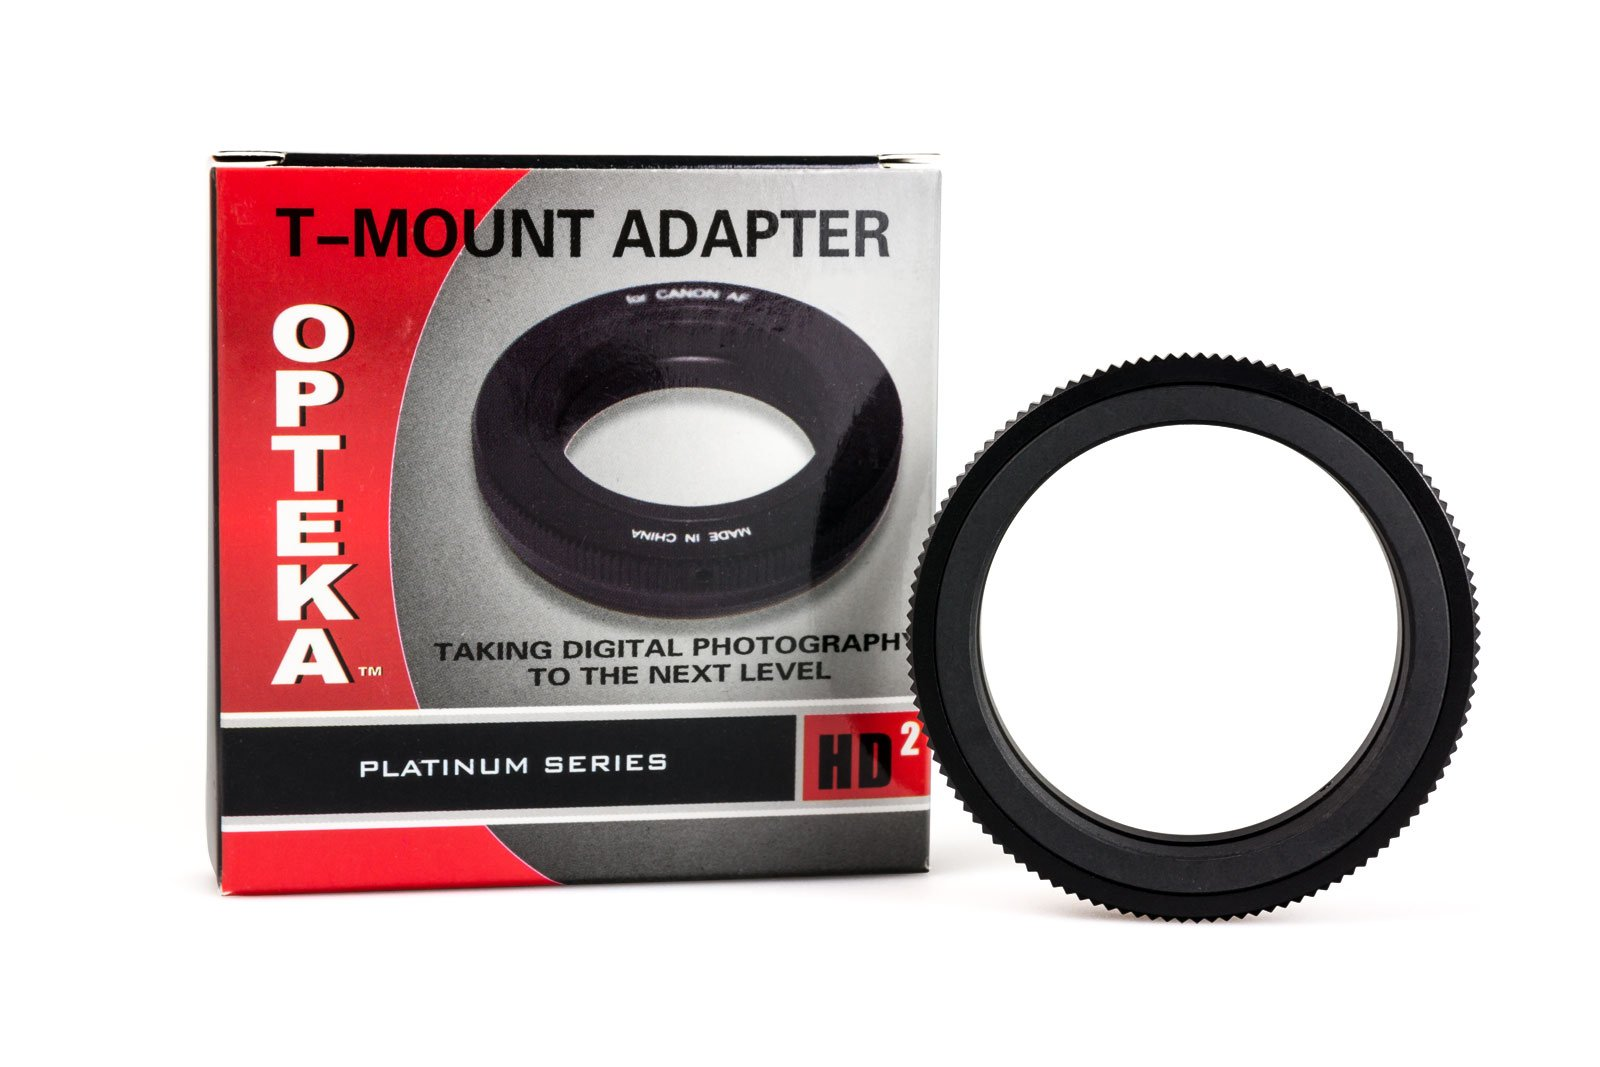 Opteka T-Mount (T2) Adapter for Nikon D5, D4, D3X, D3, D810, D800, D750, D500, D610, D600, D300, D7200, D7100, D5500, D5300, D5200, D5100, D3300, D3200 and D3100 Digital SLR Cameras